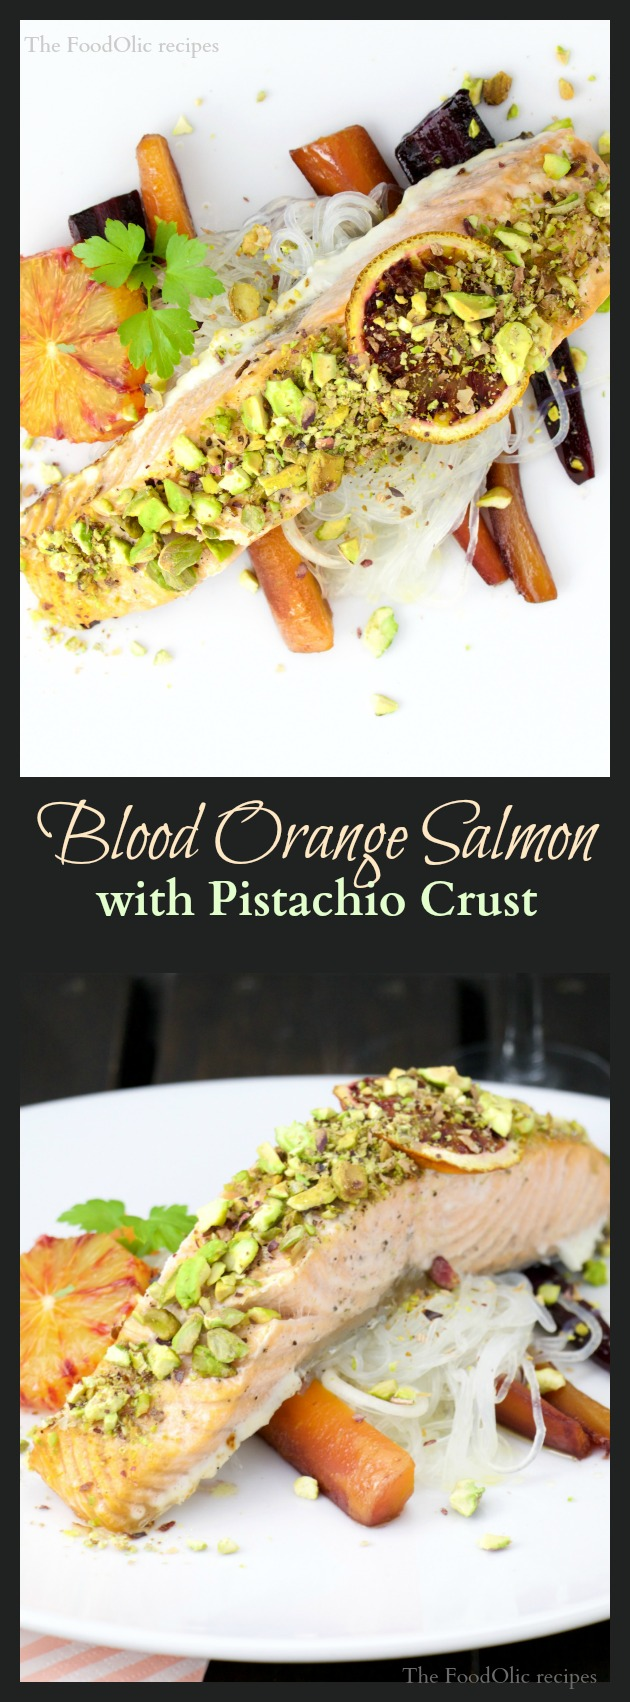 Blood Orange Salmon with Pistachio Crust is an extra fun and colorful dish. A tangy yet crunchy dose of sun and omega-3.